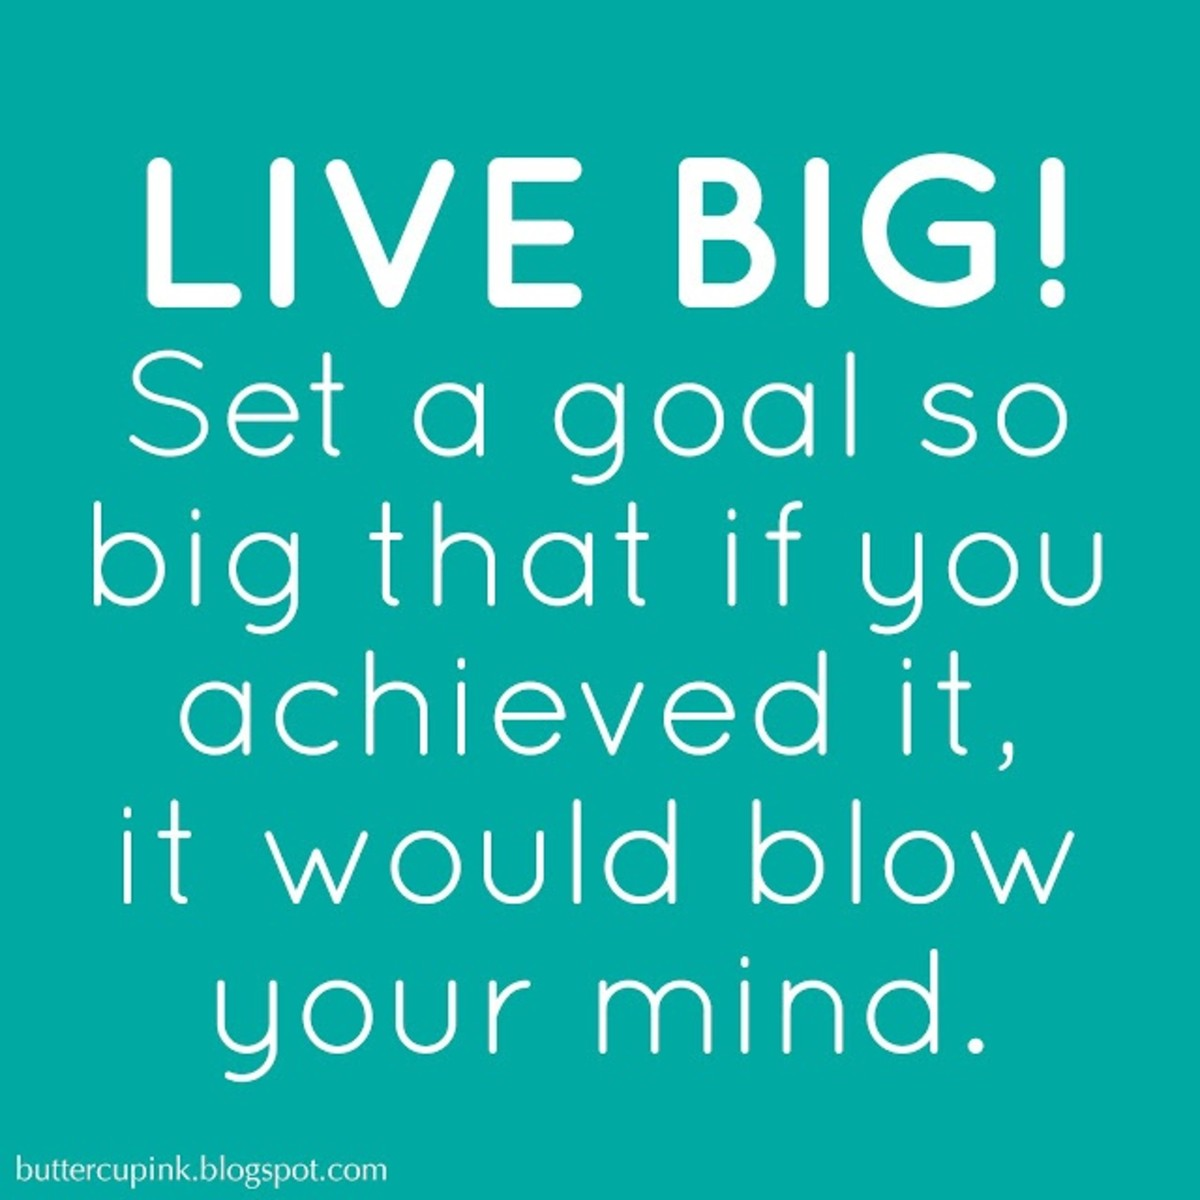 is-being-with-your-own-thoughts-a-good-way-to-be-in-accordance-to-limitless-living